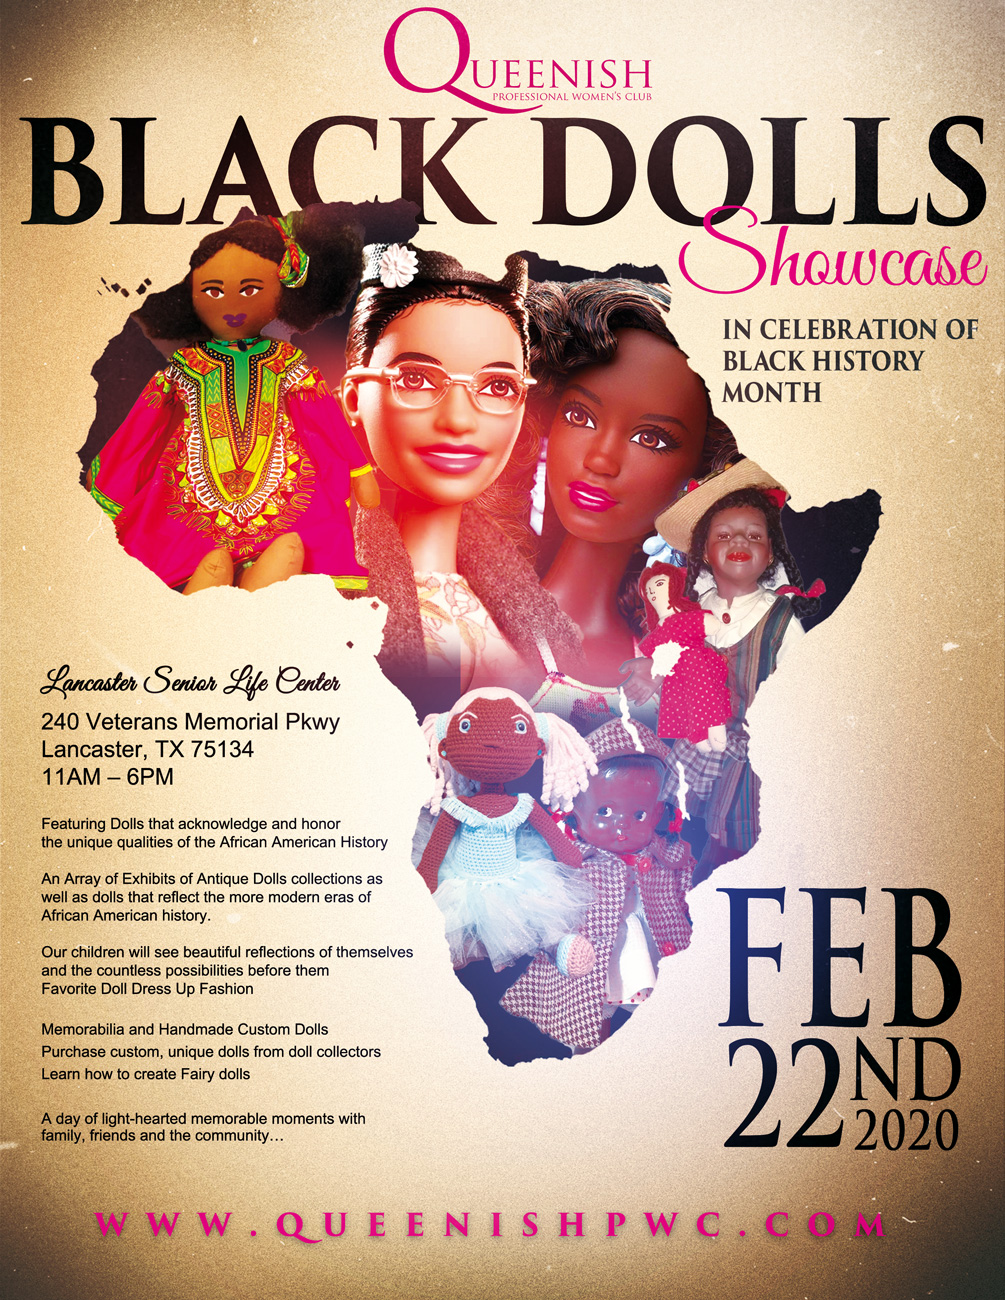 Queenish Black Dolls Dallas: February 22, 2020